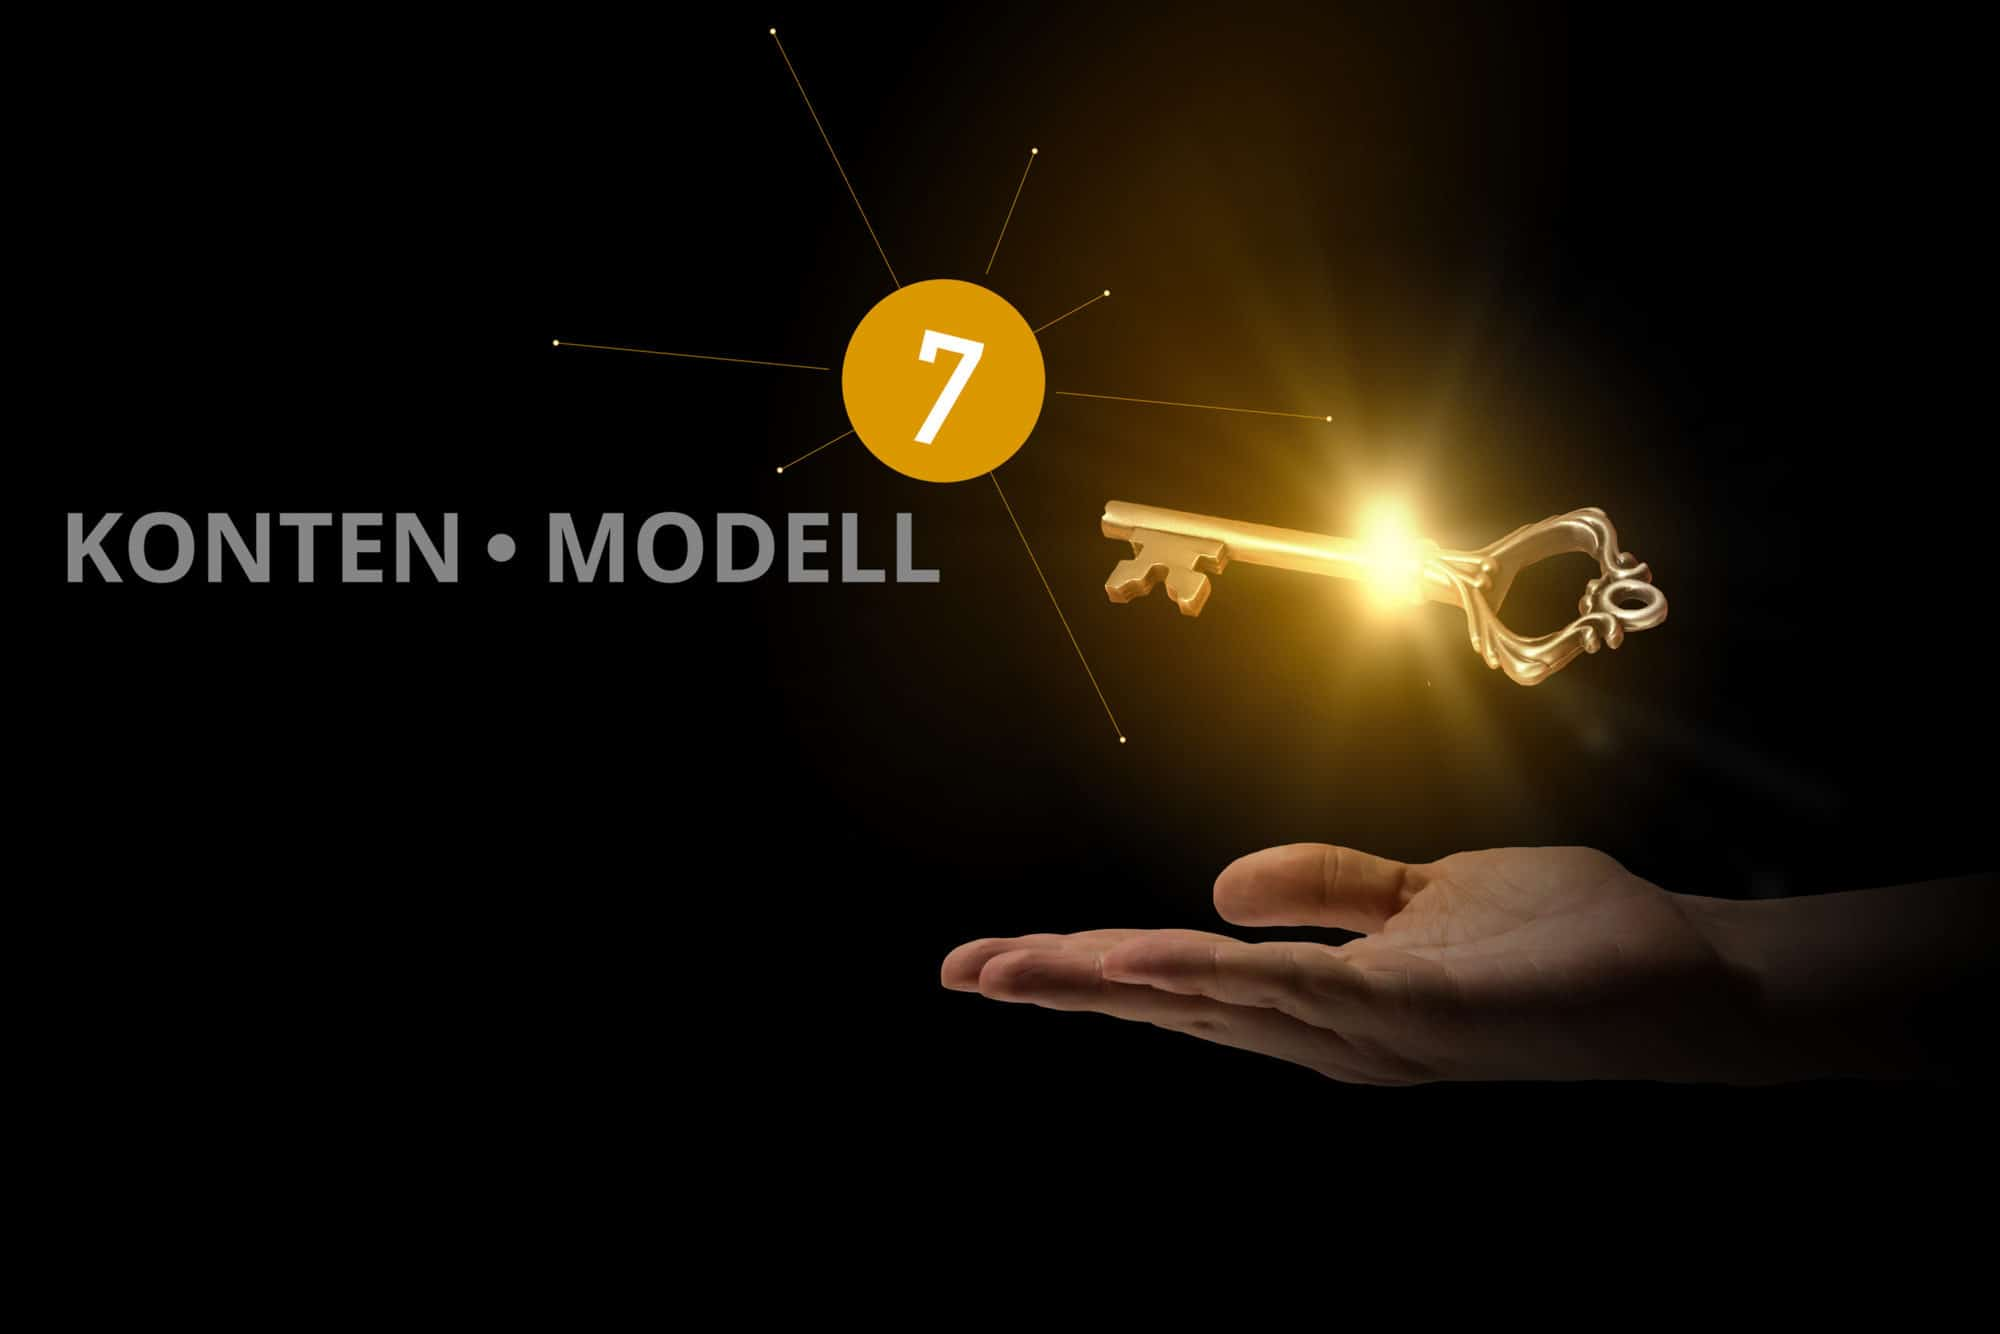 7 Konten Modell Noble Metal Factory